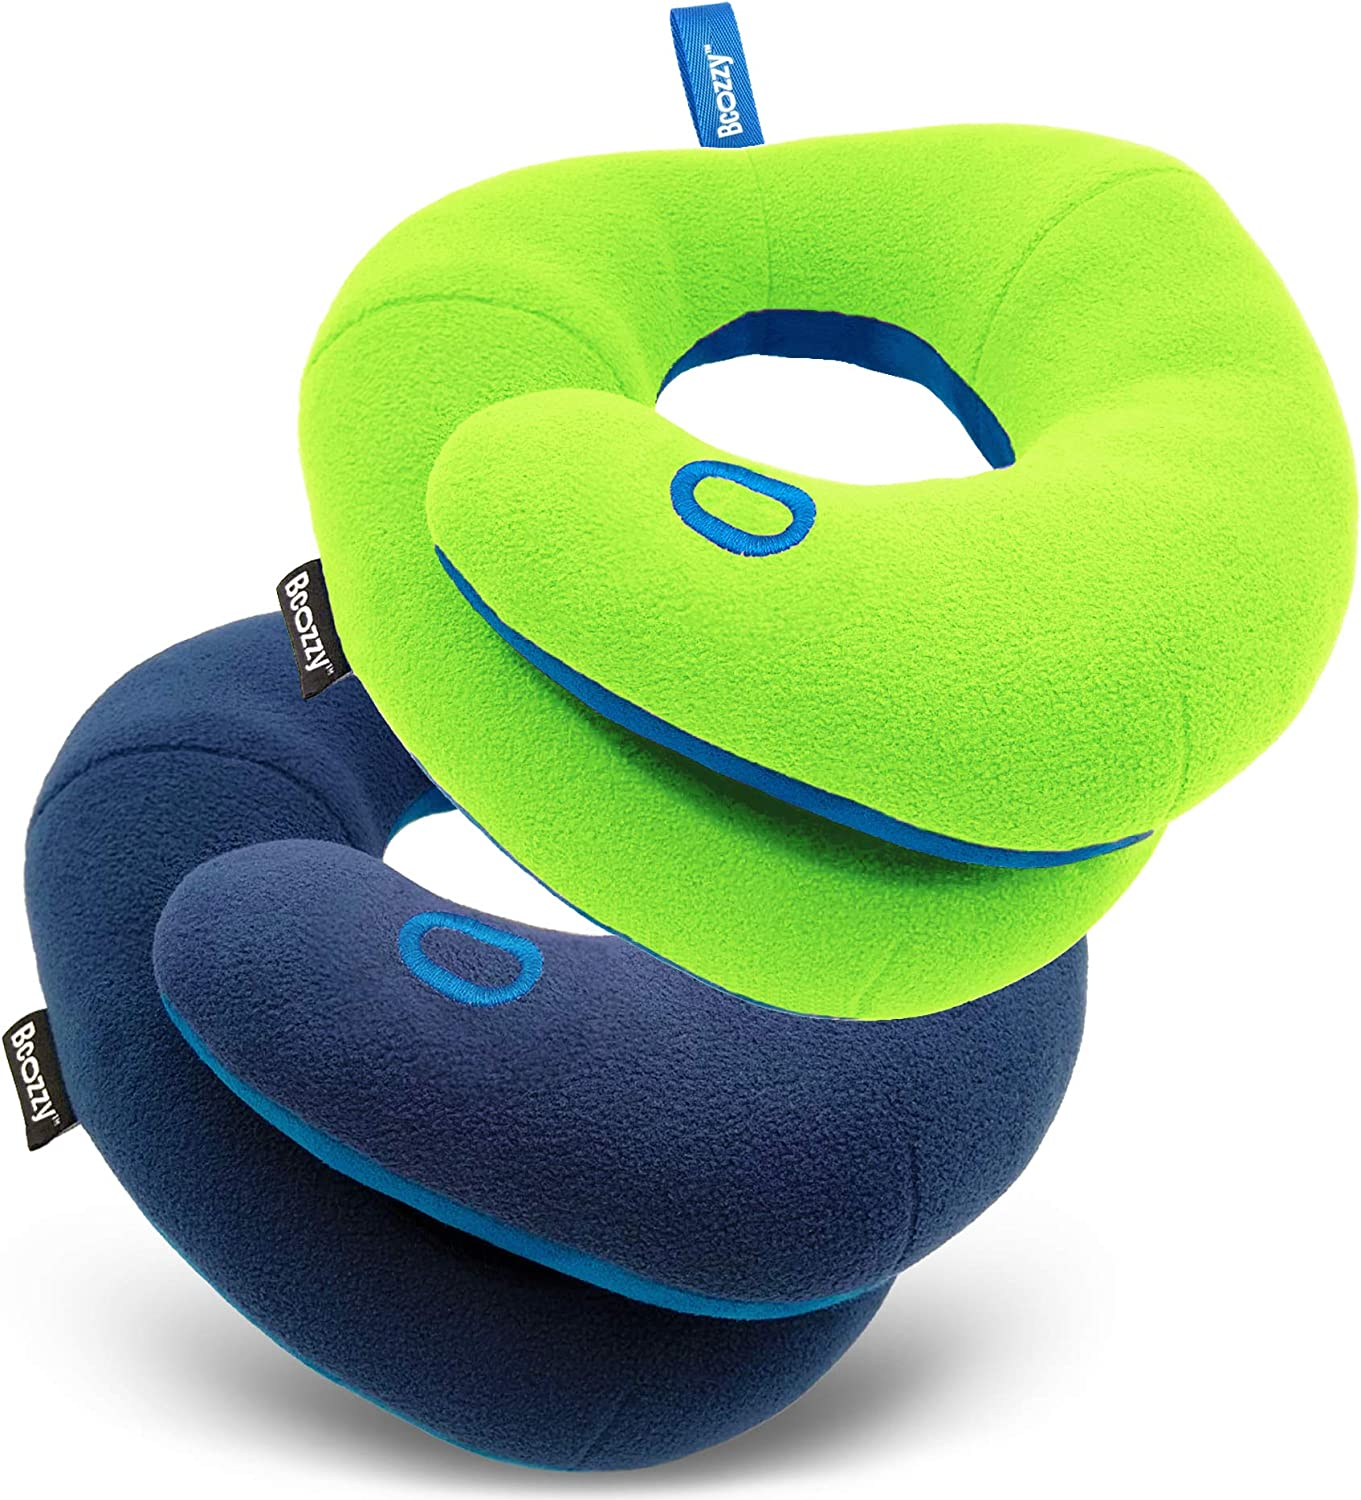 Neck and Chin Support Navy BCOZZY Kids Bundle- 2 Travel Neck Pillows for Toddlers- Super Soft Head Green for Comfortable Sleep in Car Seat Booster and Plane- Washable